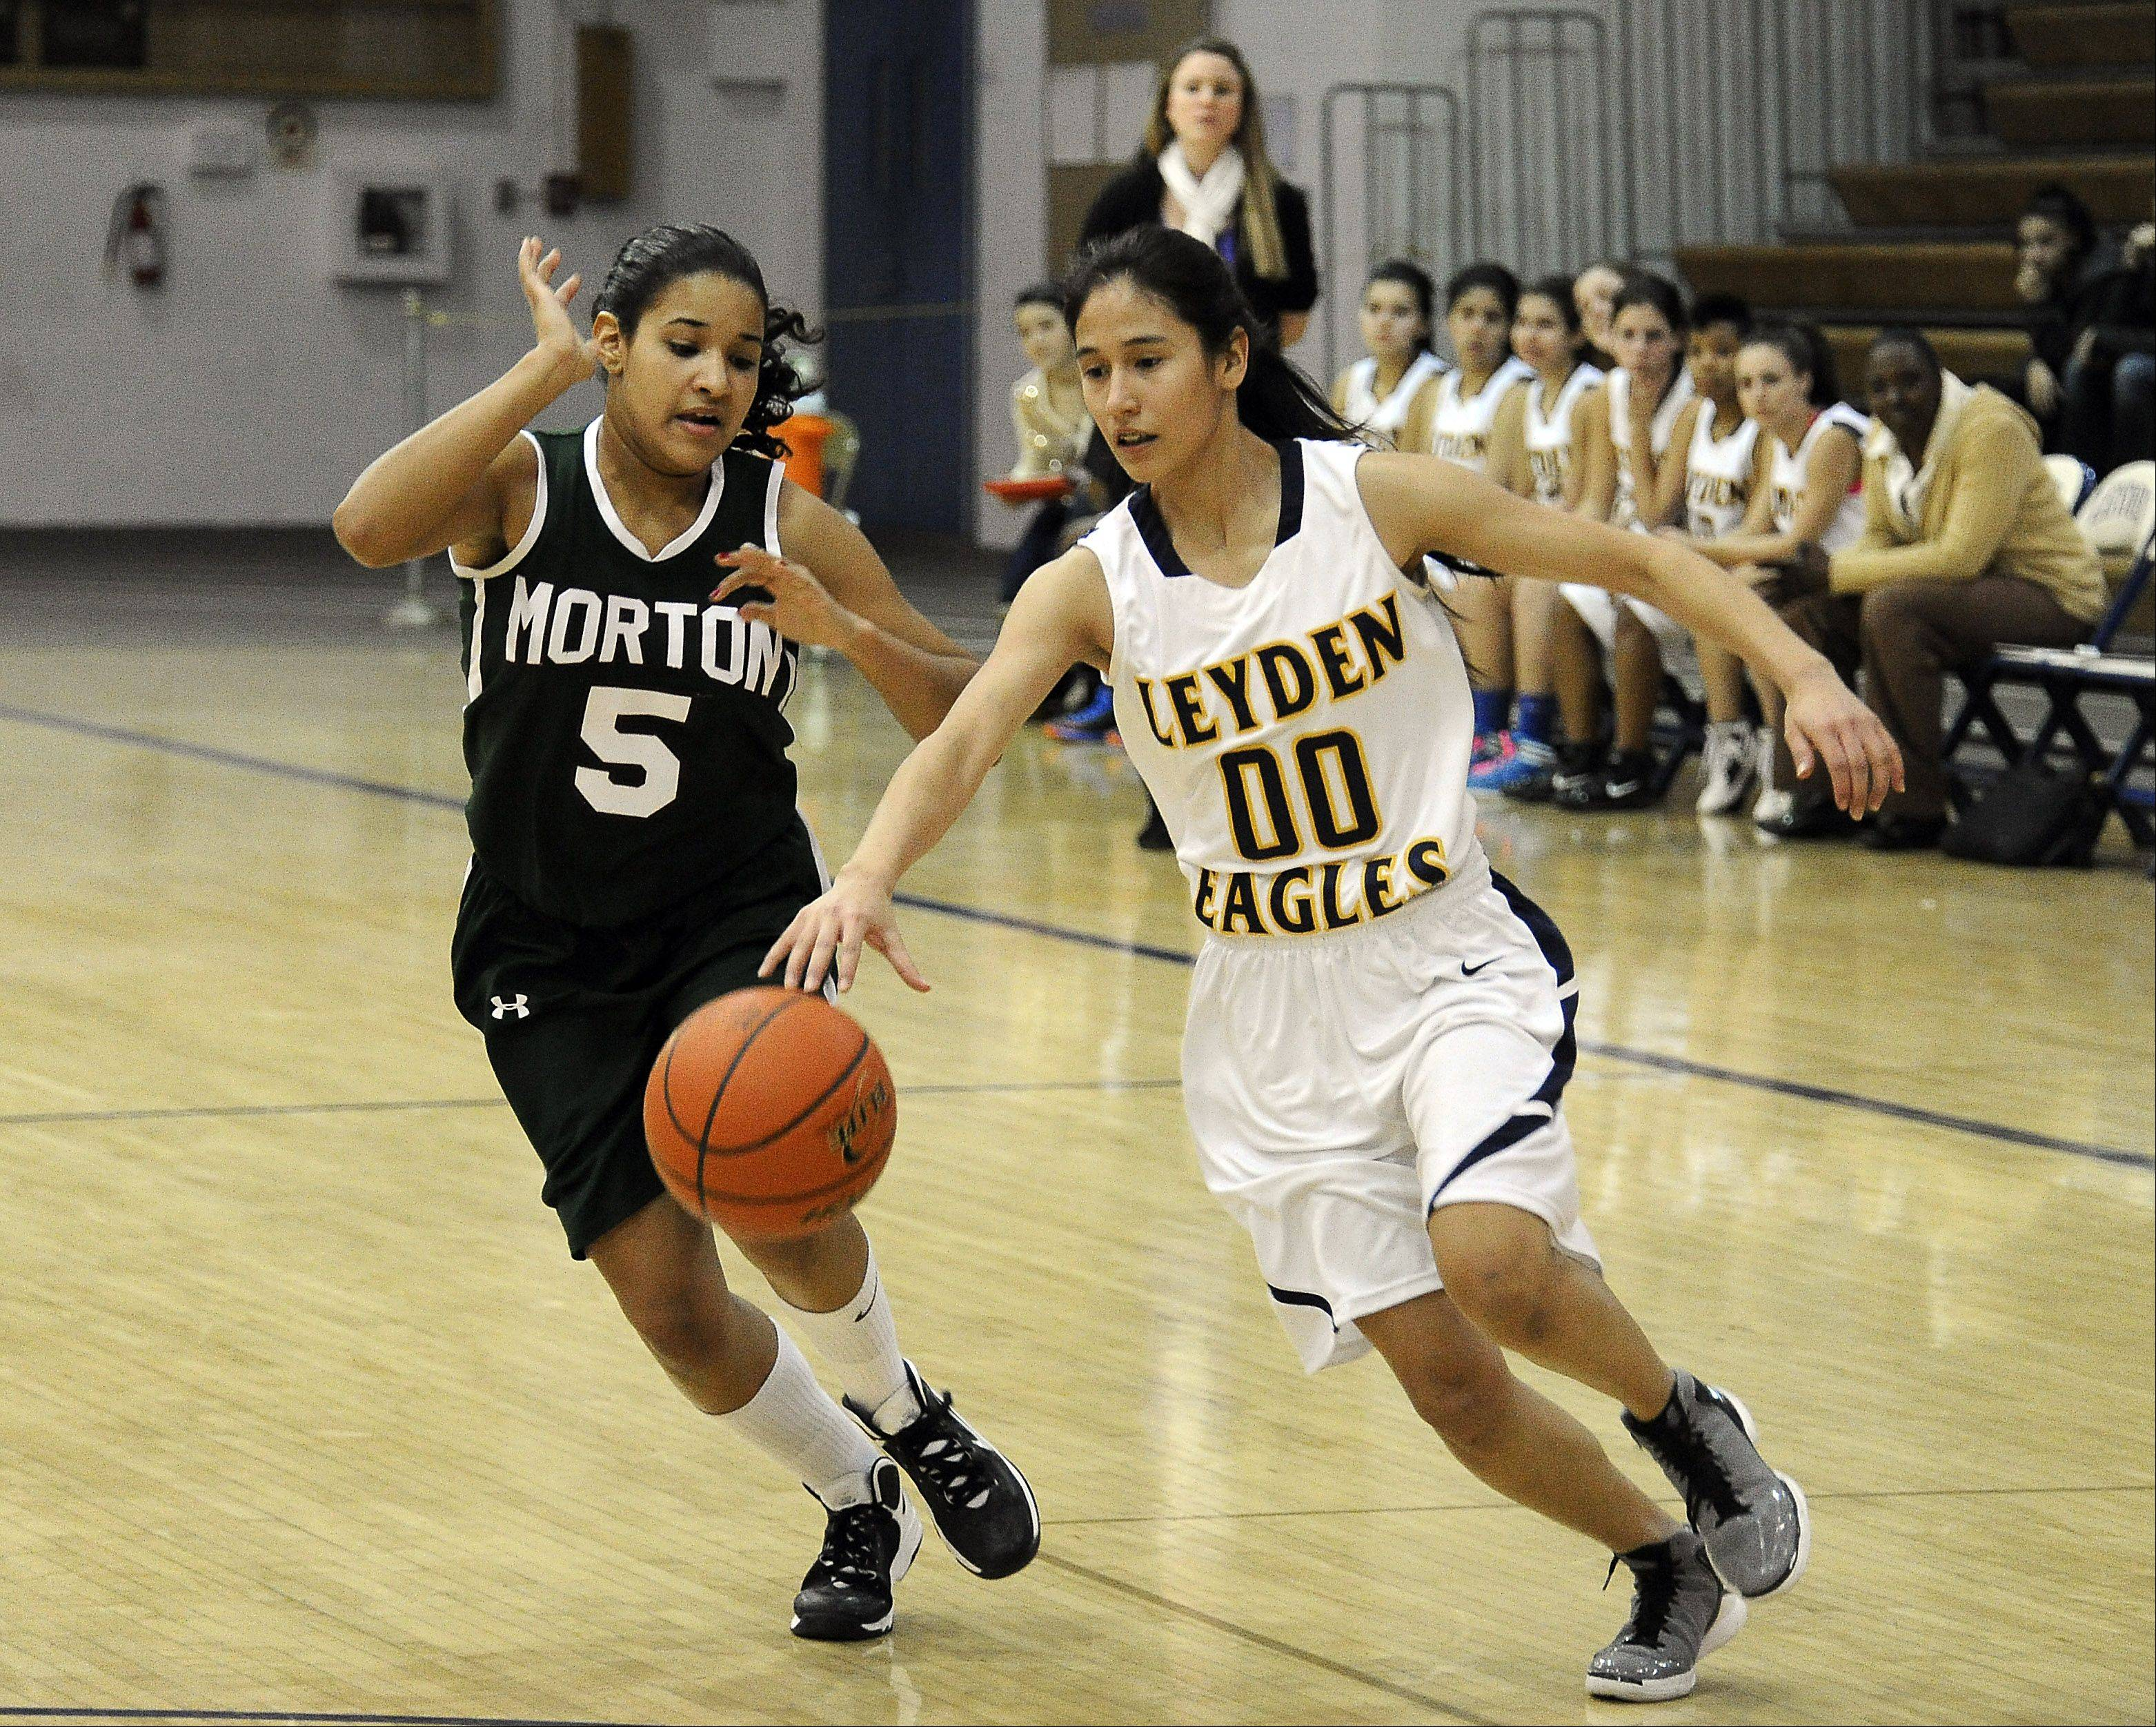 Leyden's Alondra Chavarria breaks free for a bucket against Morton on Friday at Leyden's West campus in Northlake.